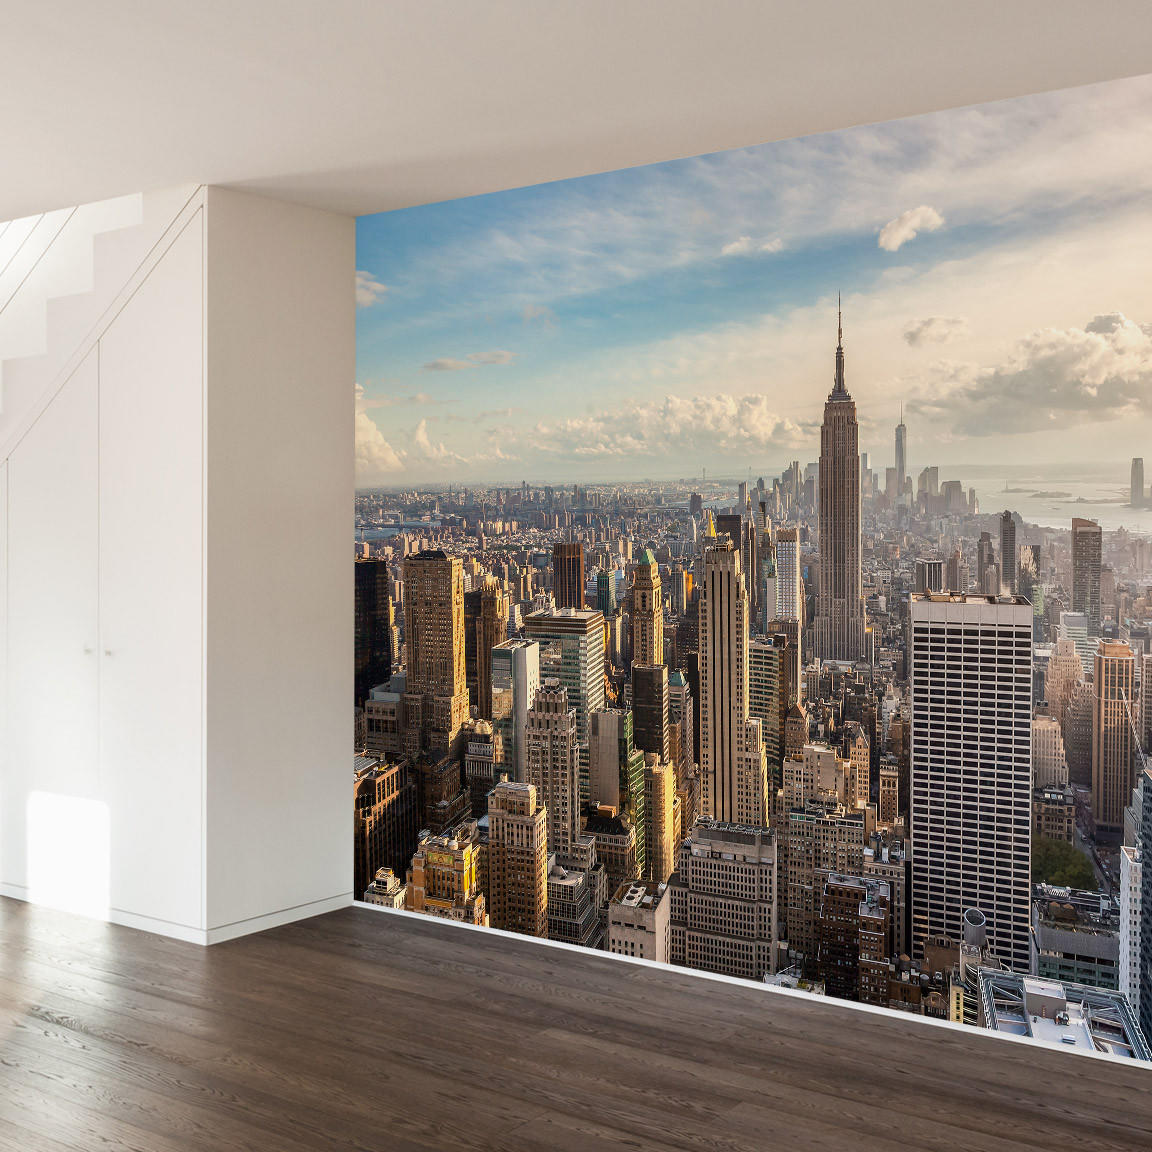 New york skyline wall mural decal download lengkap for Mural sekolah